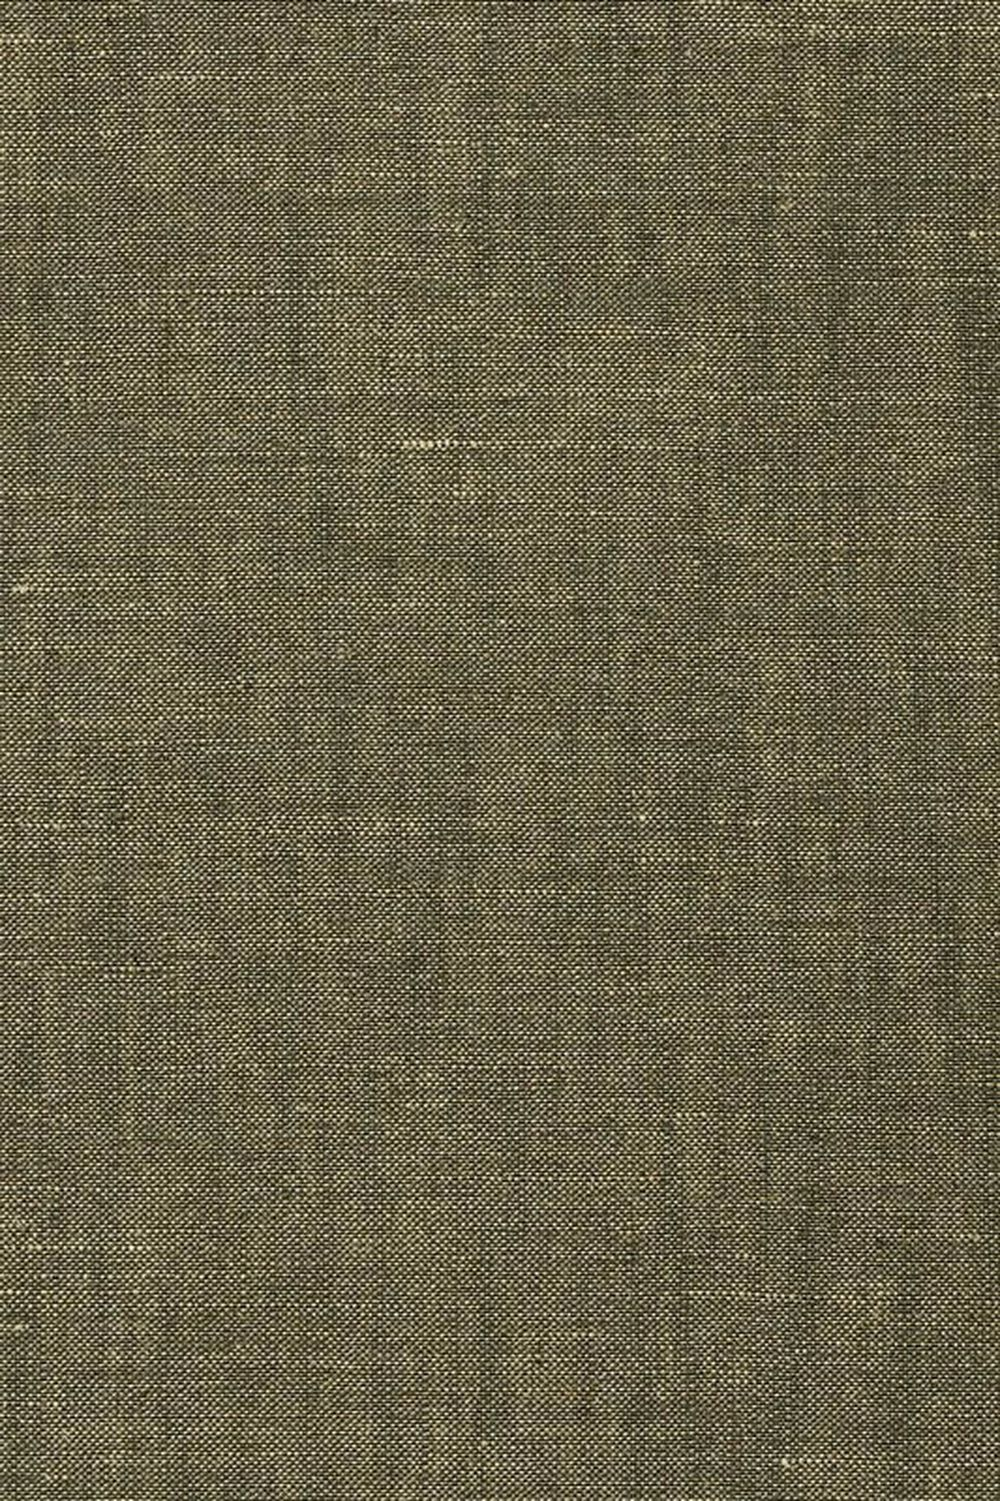 Photo of the fabric Palo Basalt swatch by James Dunlop. Use for Curtains, Upholstery Medium Duty, Accessory. Style of Plain